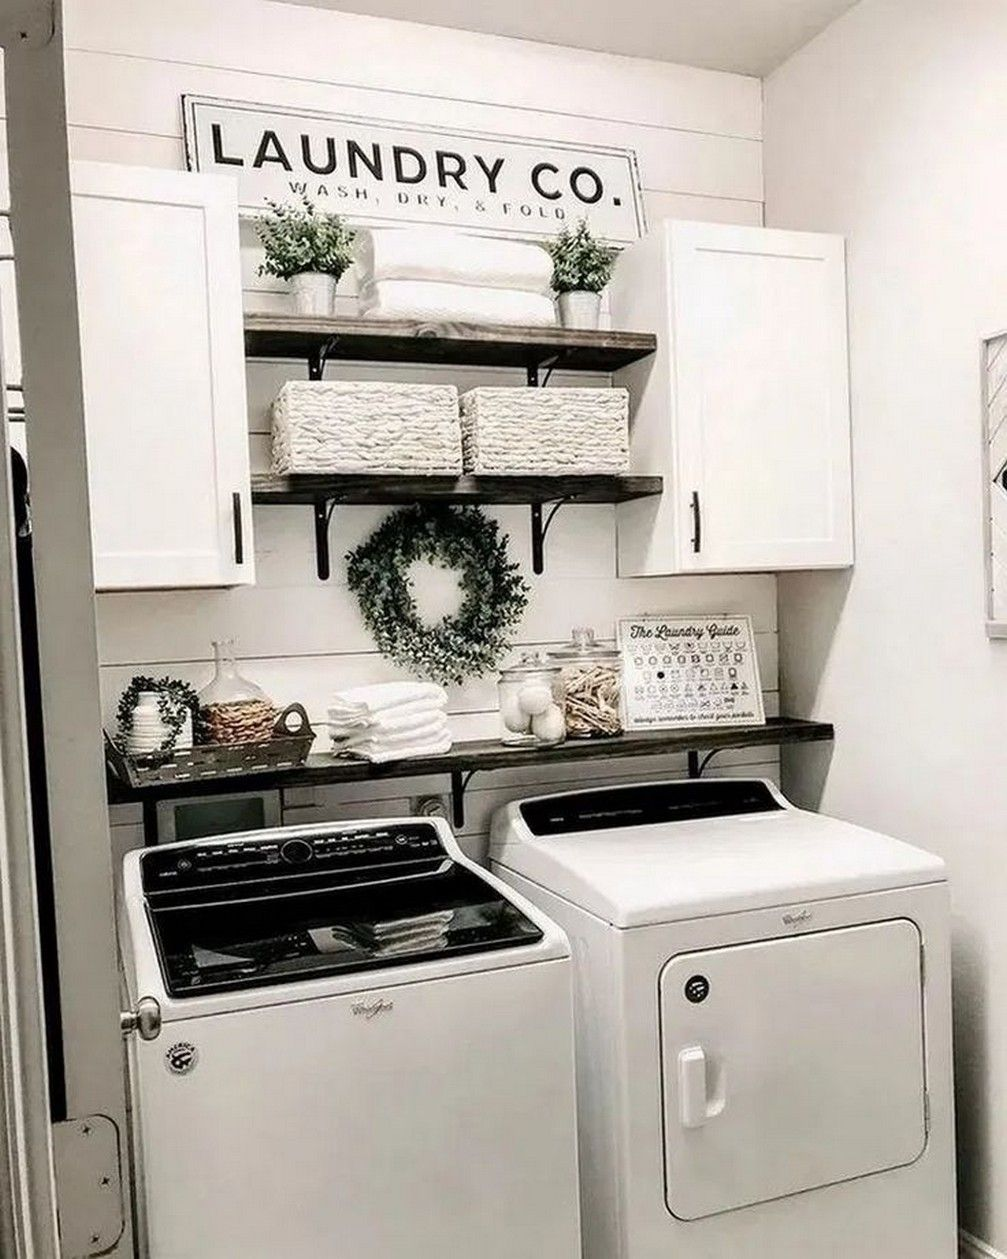 37 Clever Laundry Room Remodel Ideas And Designs In 2020 Laundry Room Renovation Laundry Room Organization Storage Laundy Room